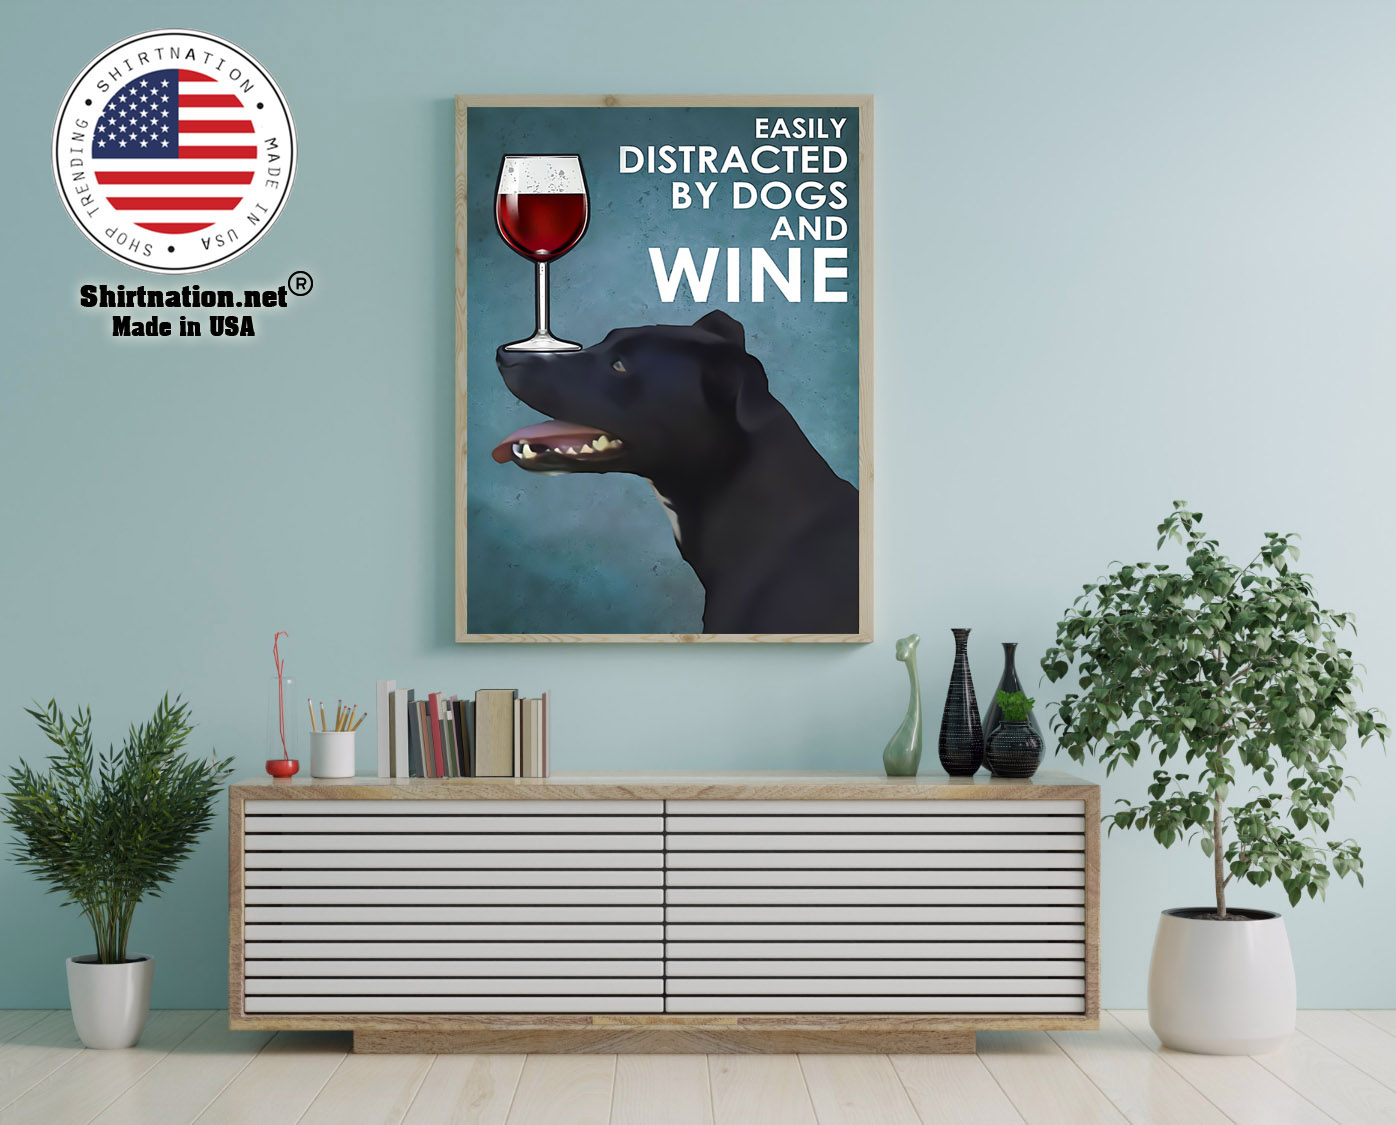 Patterdale terrier easily distracted by dogs and wine poster